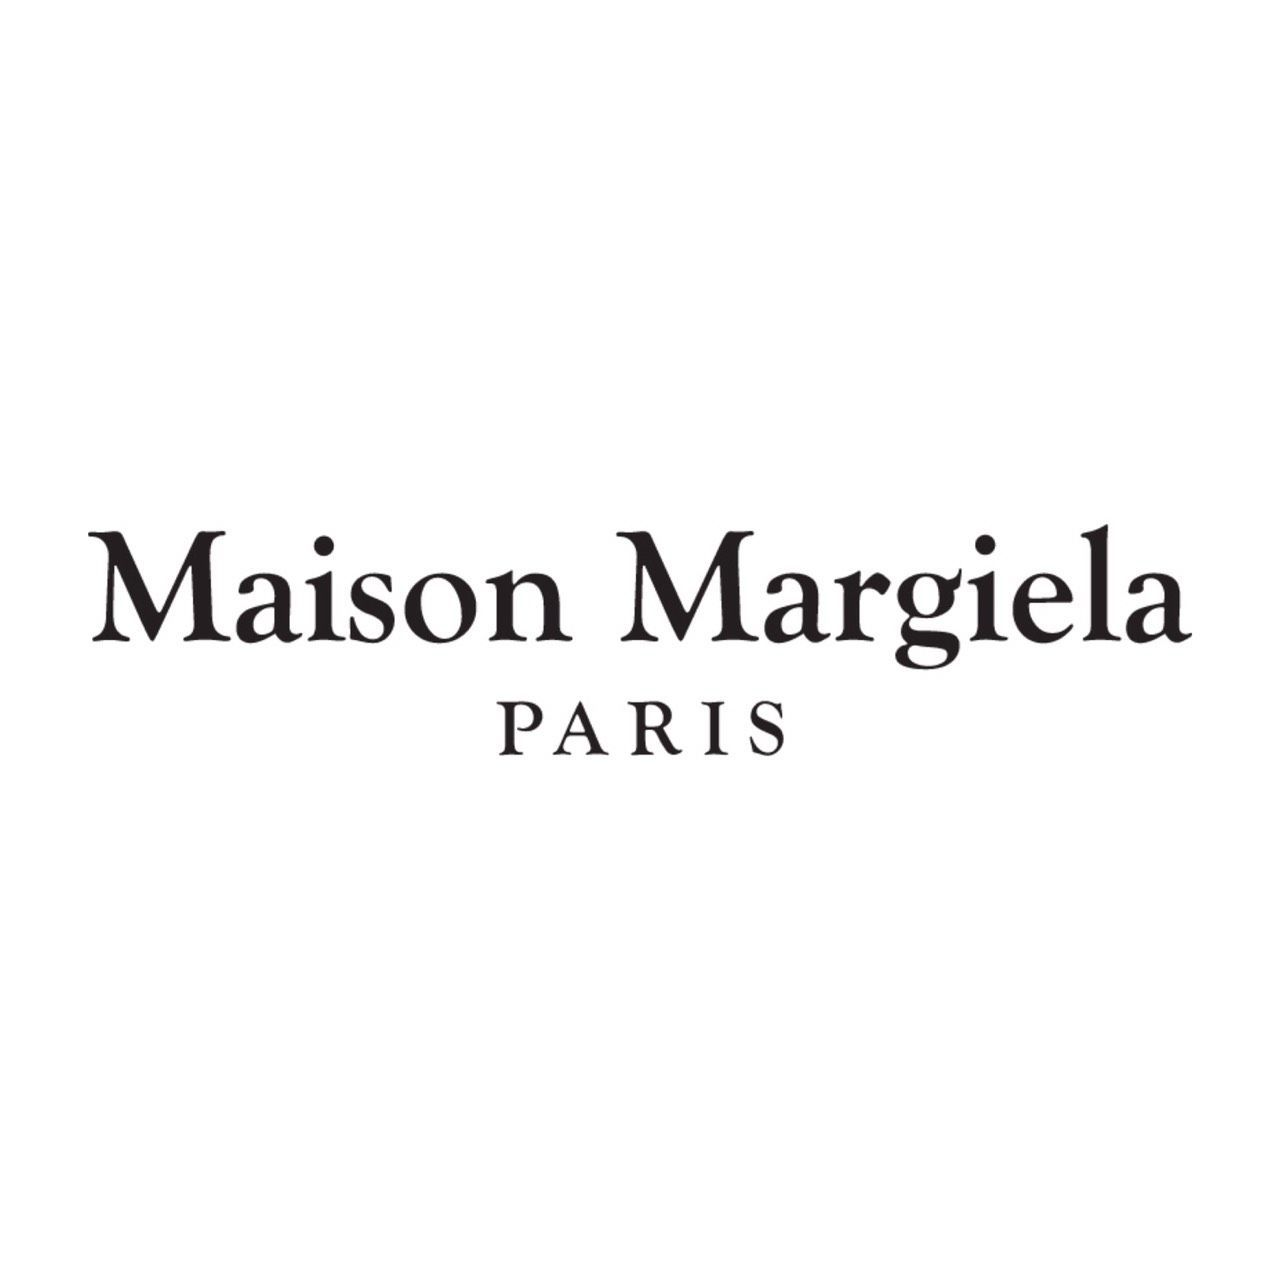 【 Maison Margiela 】2019AW Collection startの写真